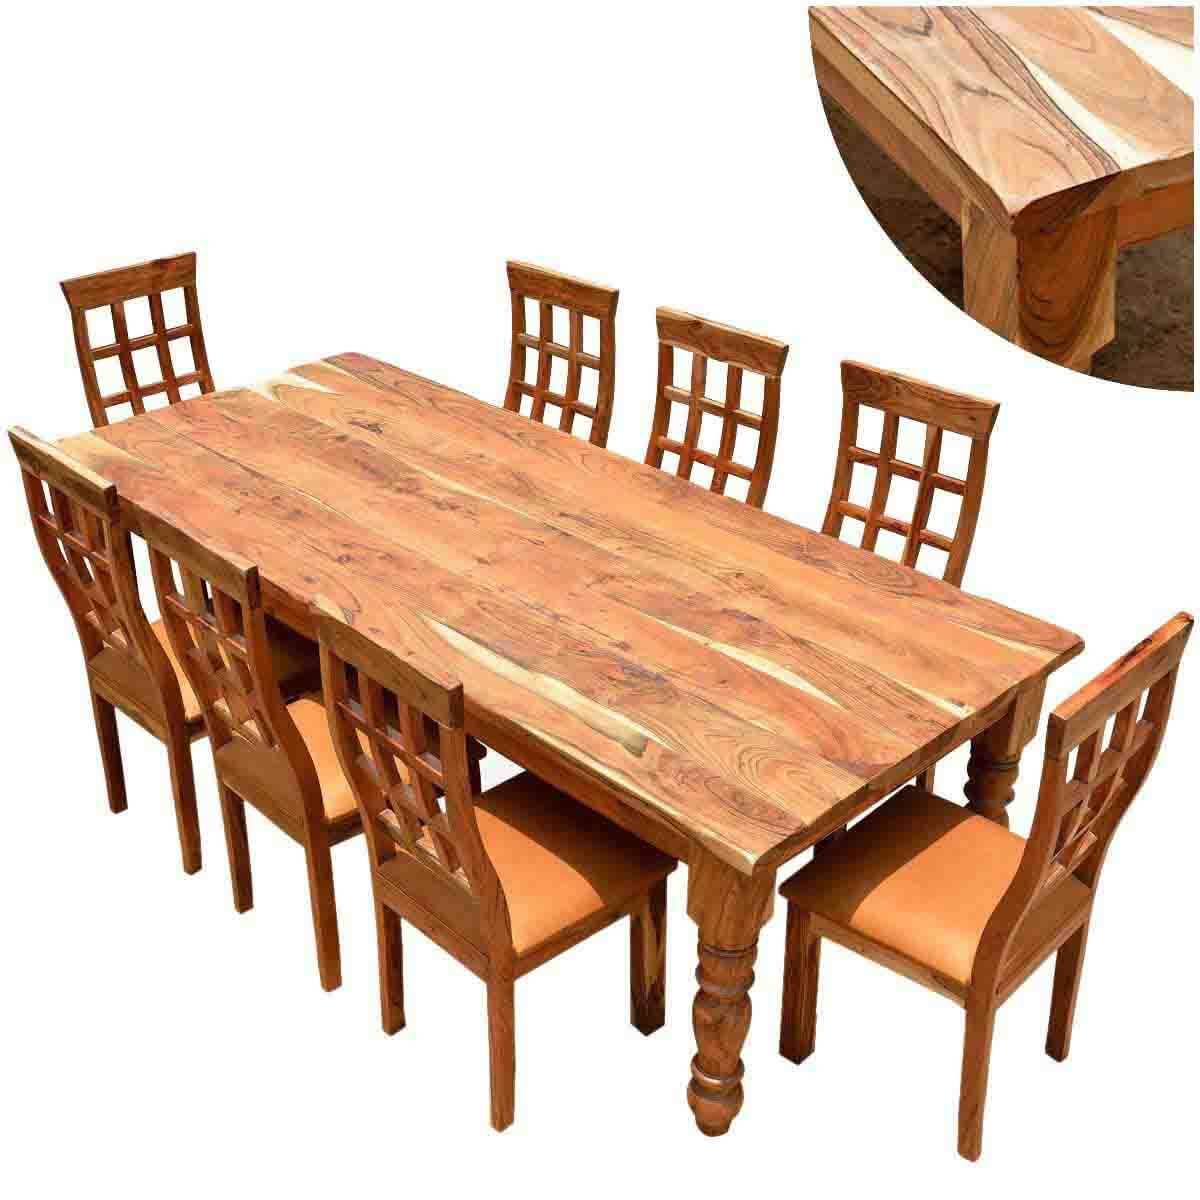 Download rustic wood dining room table gen4congress with for Wood dining table decor